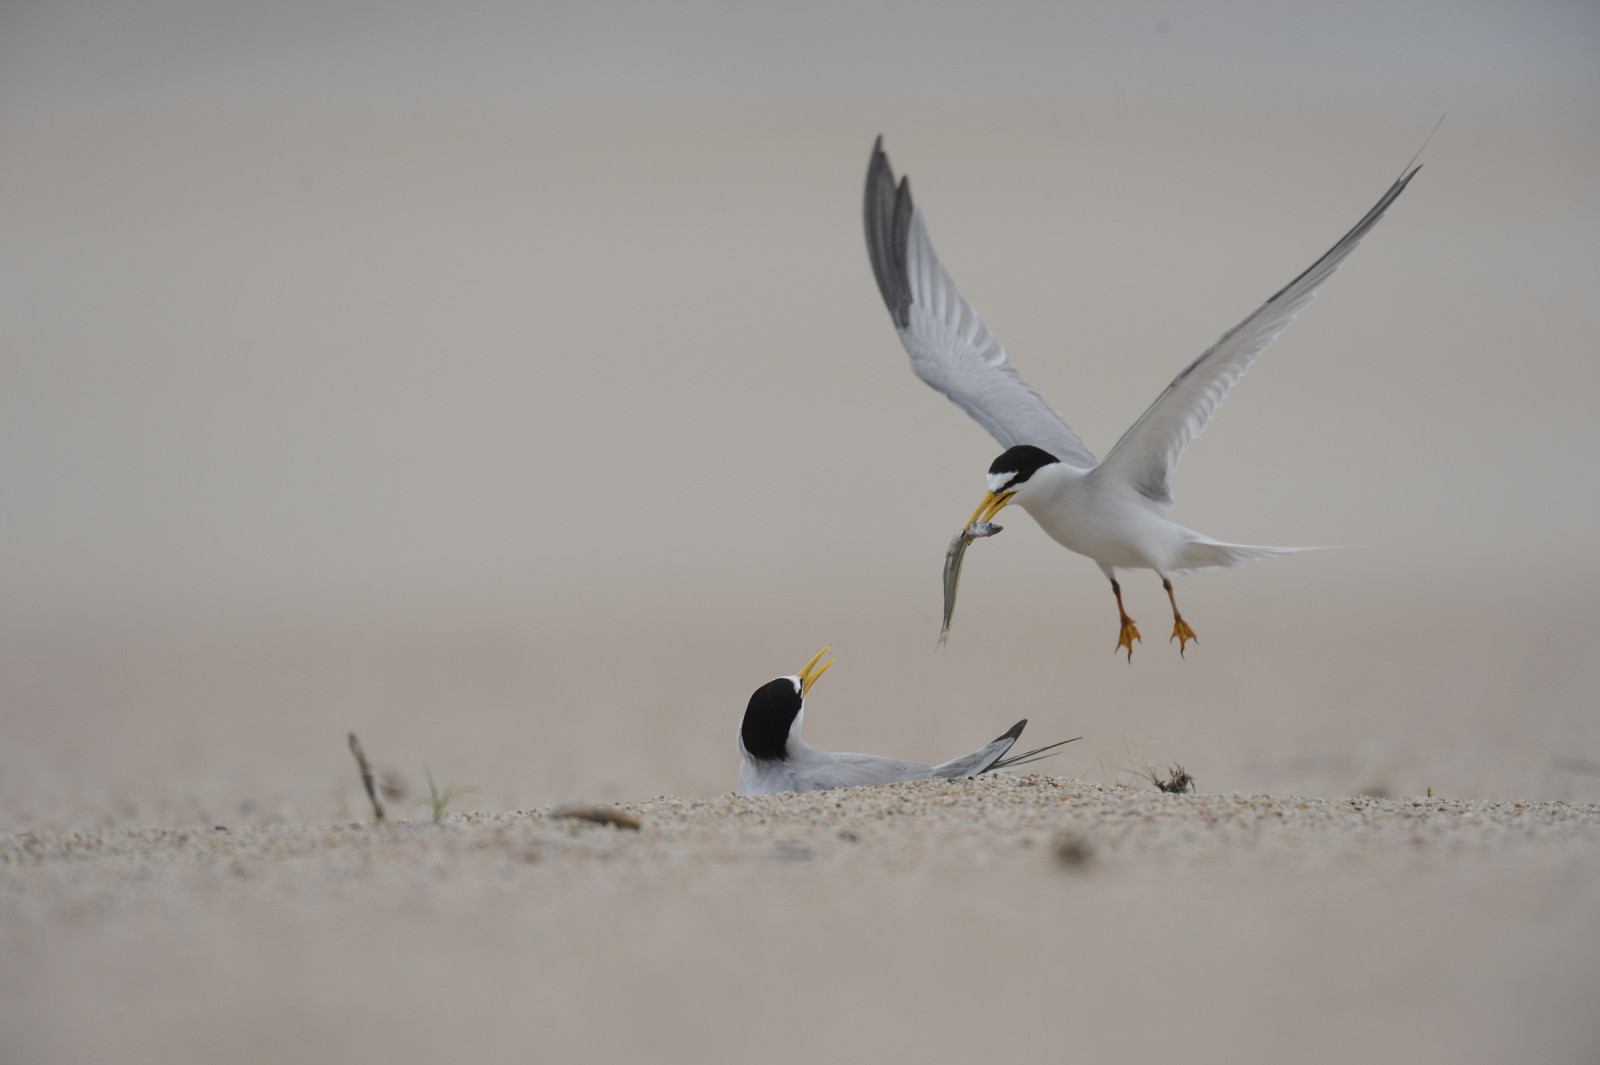 Least tern delivers a fish to its mate at its nest in the sand.